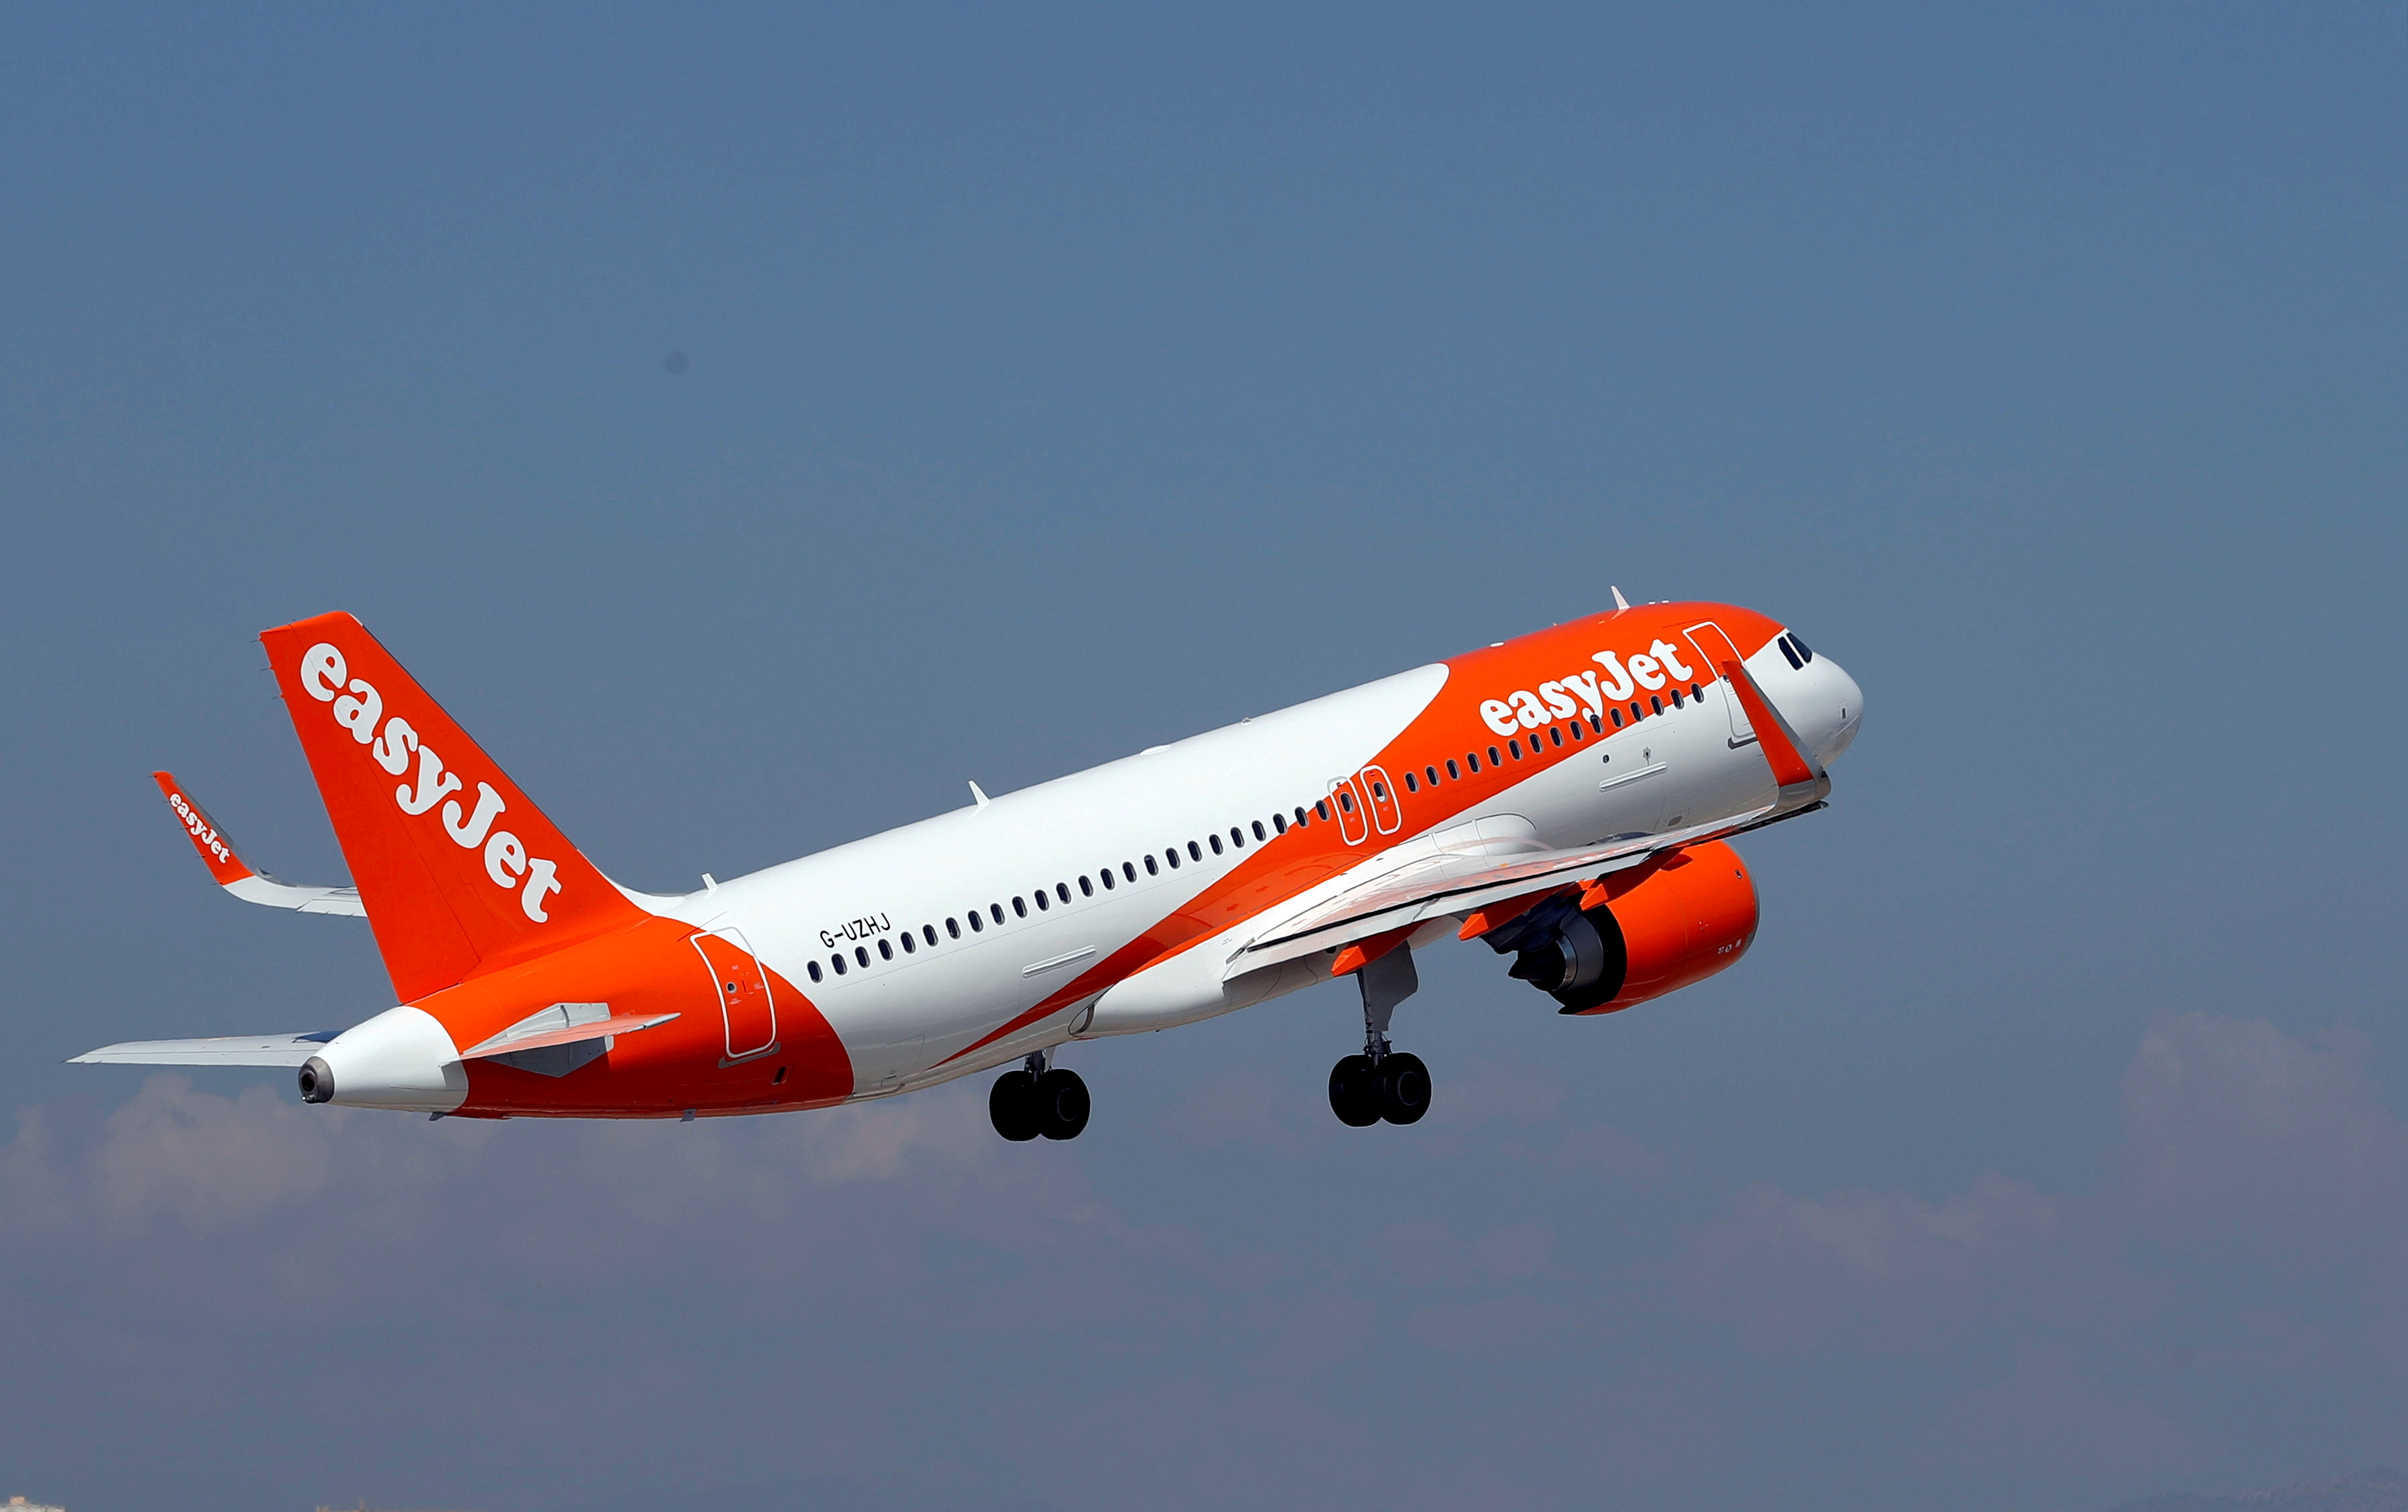 An easyJet Airbus A320-251N takes off from Nice international airport in Nice, France, September 19, 2018.  REUTERS/Eric Gaillard